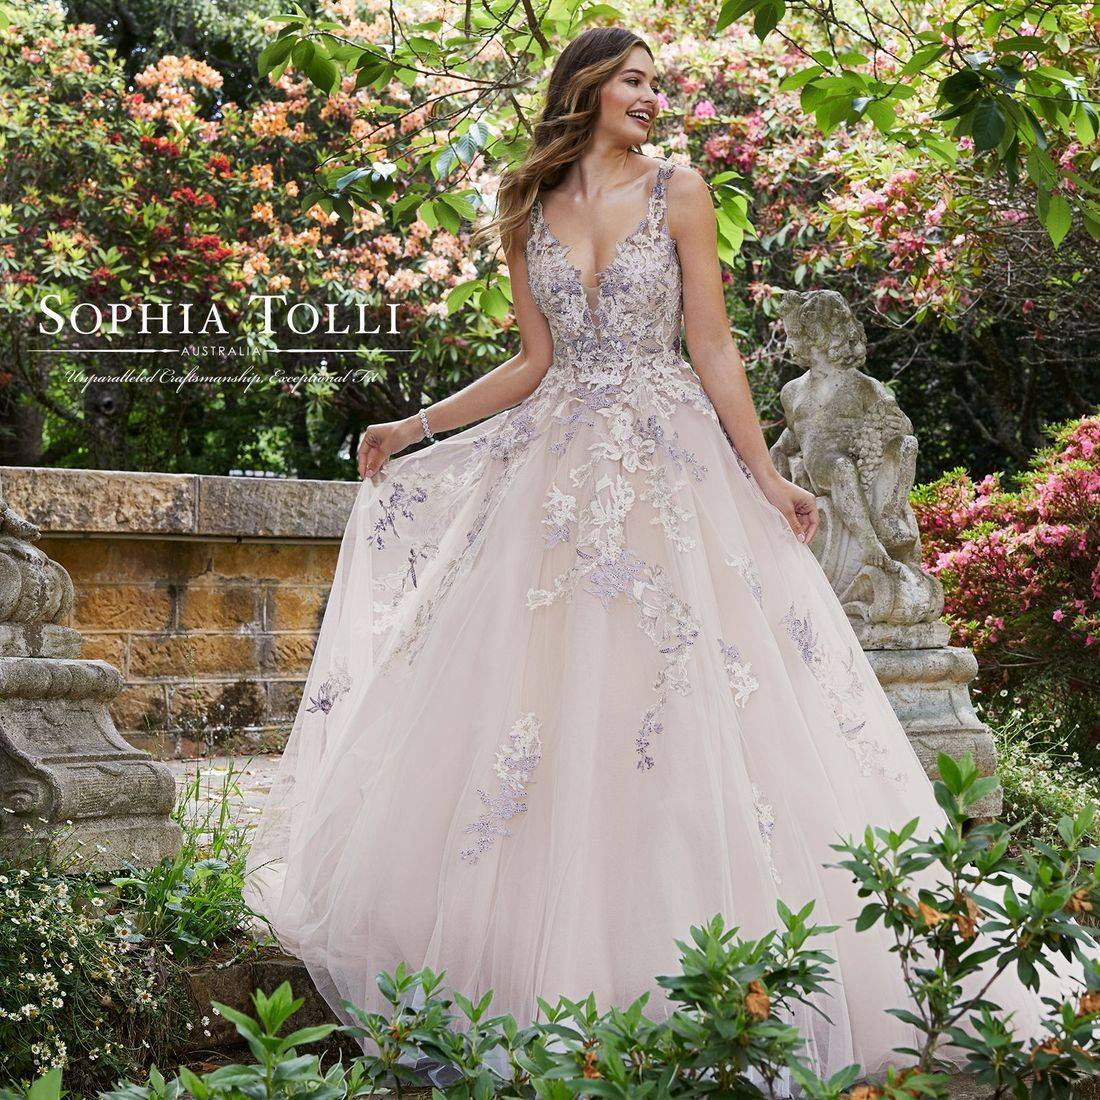 sophia tolli, sophia tolli wedding dress, ballgown wedding dress, lace wedding dress, sparkle, wedding dress with straps, lace up back, corset back, coloured wedding dress, champagne wedding dress, princess dress, a line, sleeveless, illusion, sweetheart neck, chapel train